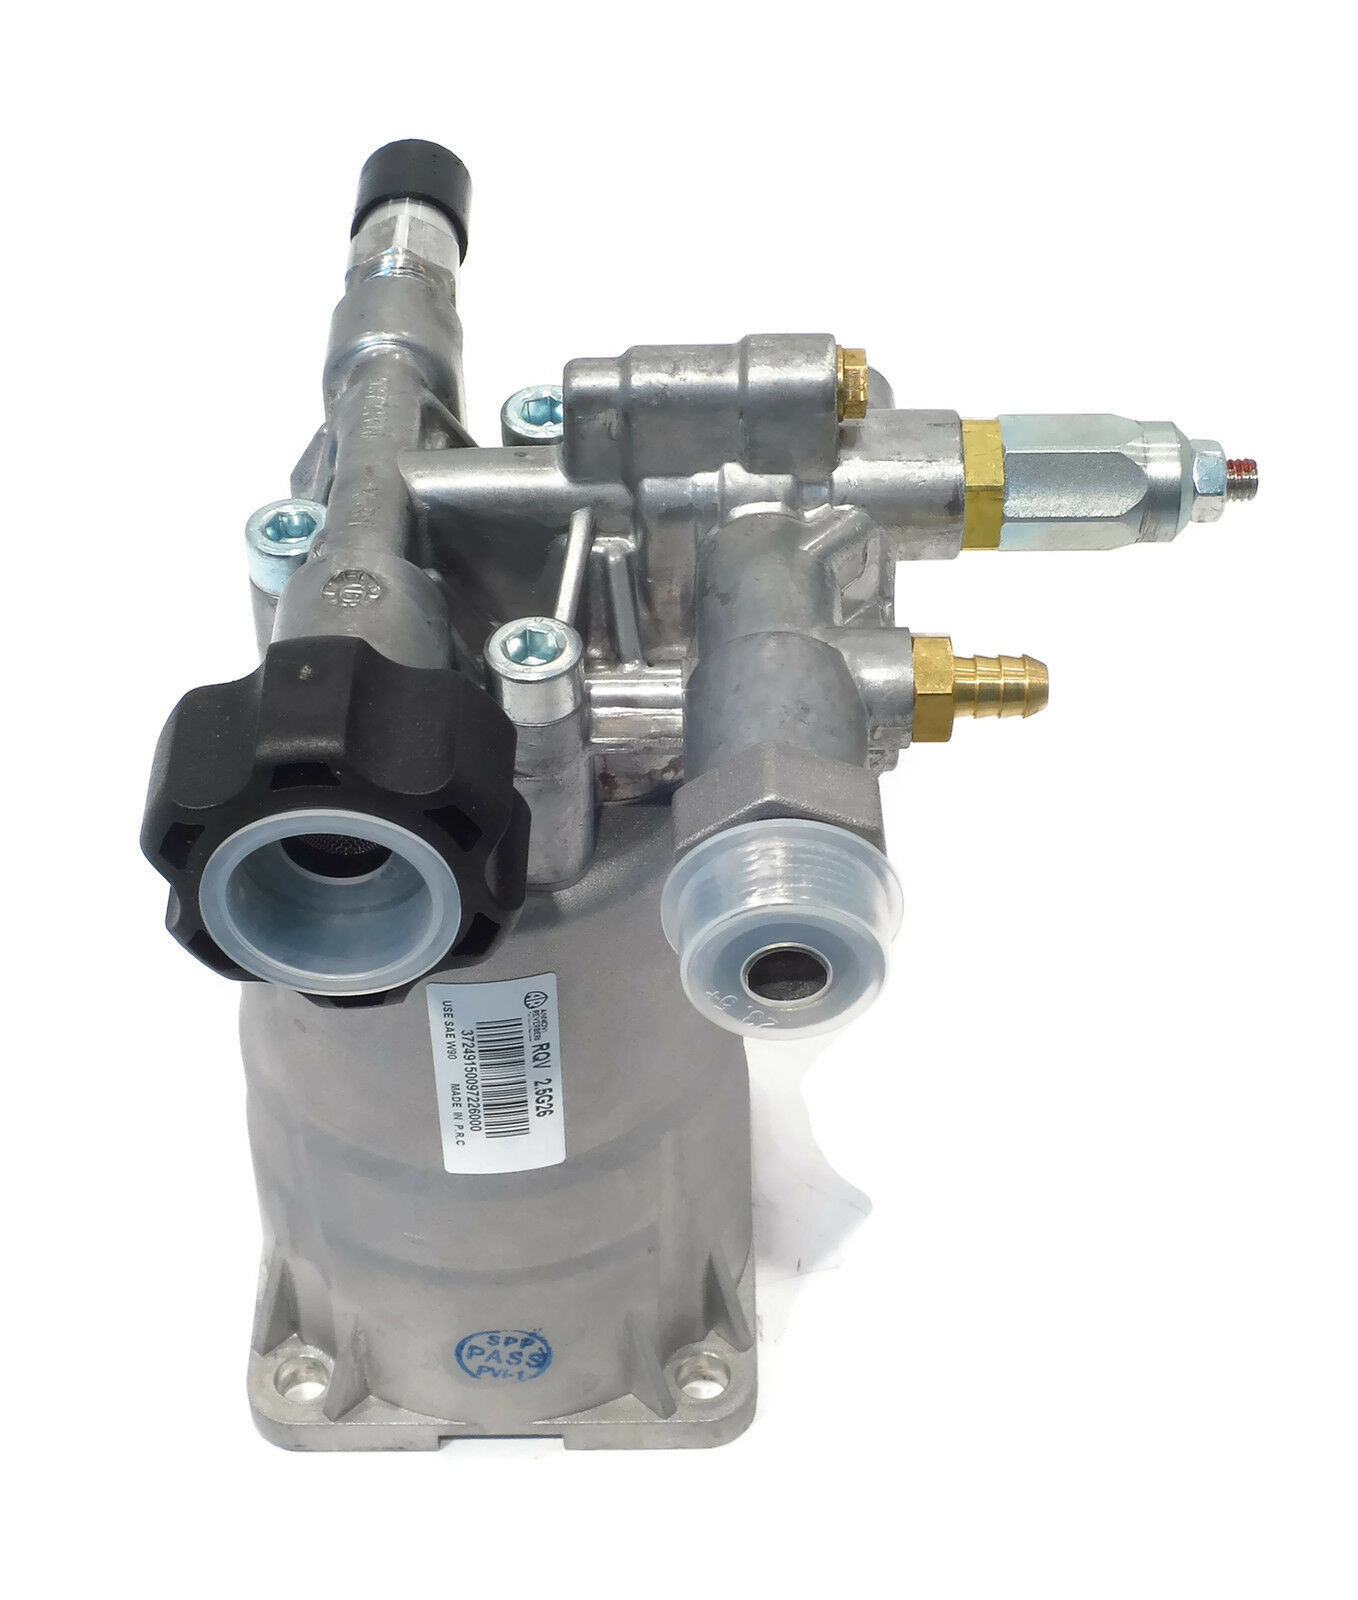 2600 PSI Pressure Washer Pump for Excell Exh2425 With Honda Engines W/  Valve | eBay